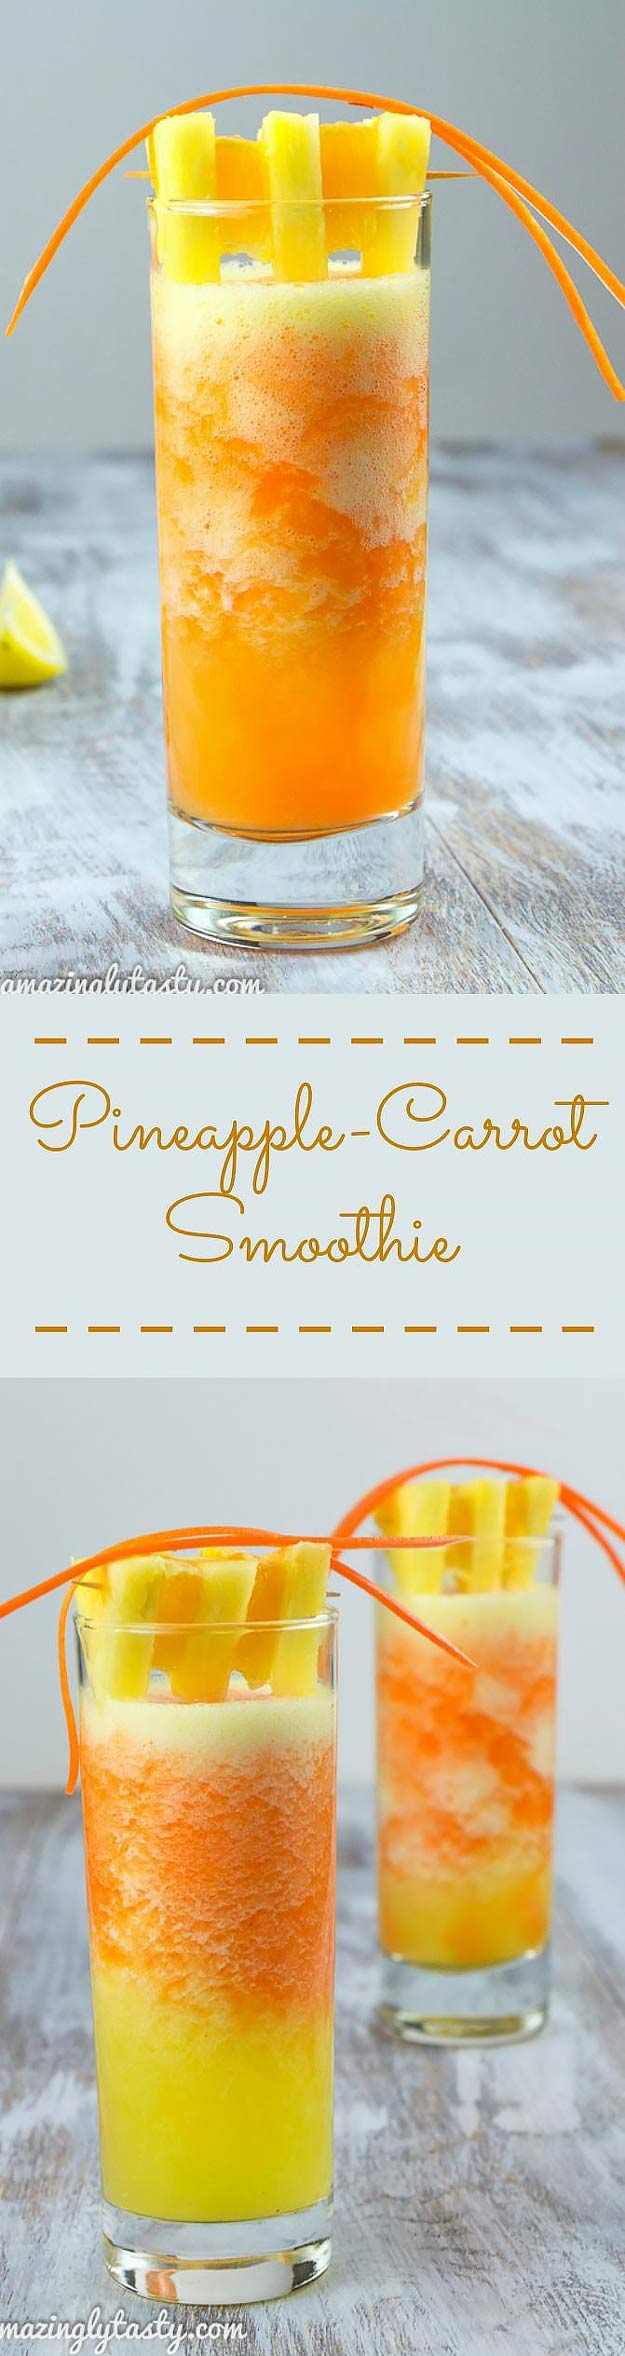 Healthy smoothie recipes and easy ideas perfect for breakfast, energy. Low calorie and high protein recipes for weightloss and to lose weight. Simple homemade recipe ideas that kids love. | Pineapple Carrot Orange Smoothie #smoothies #recipess